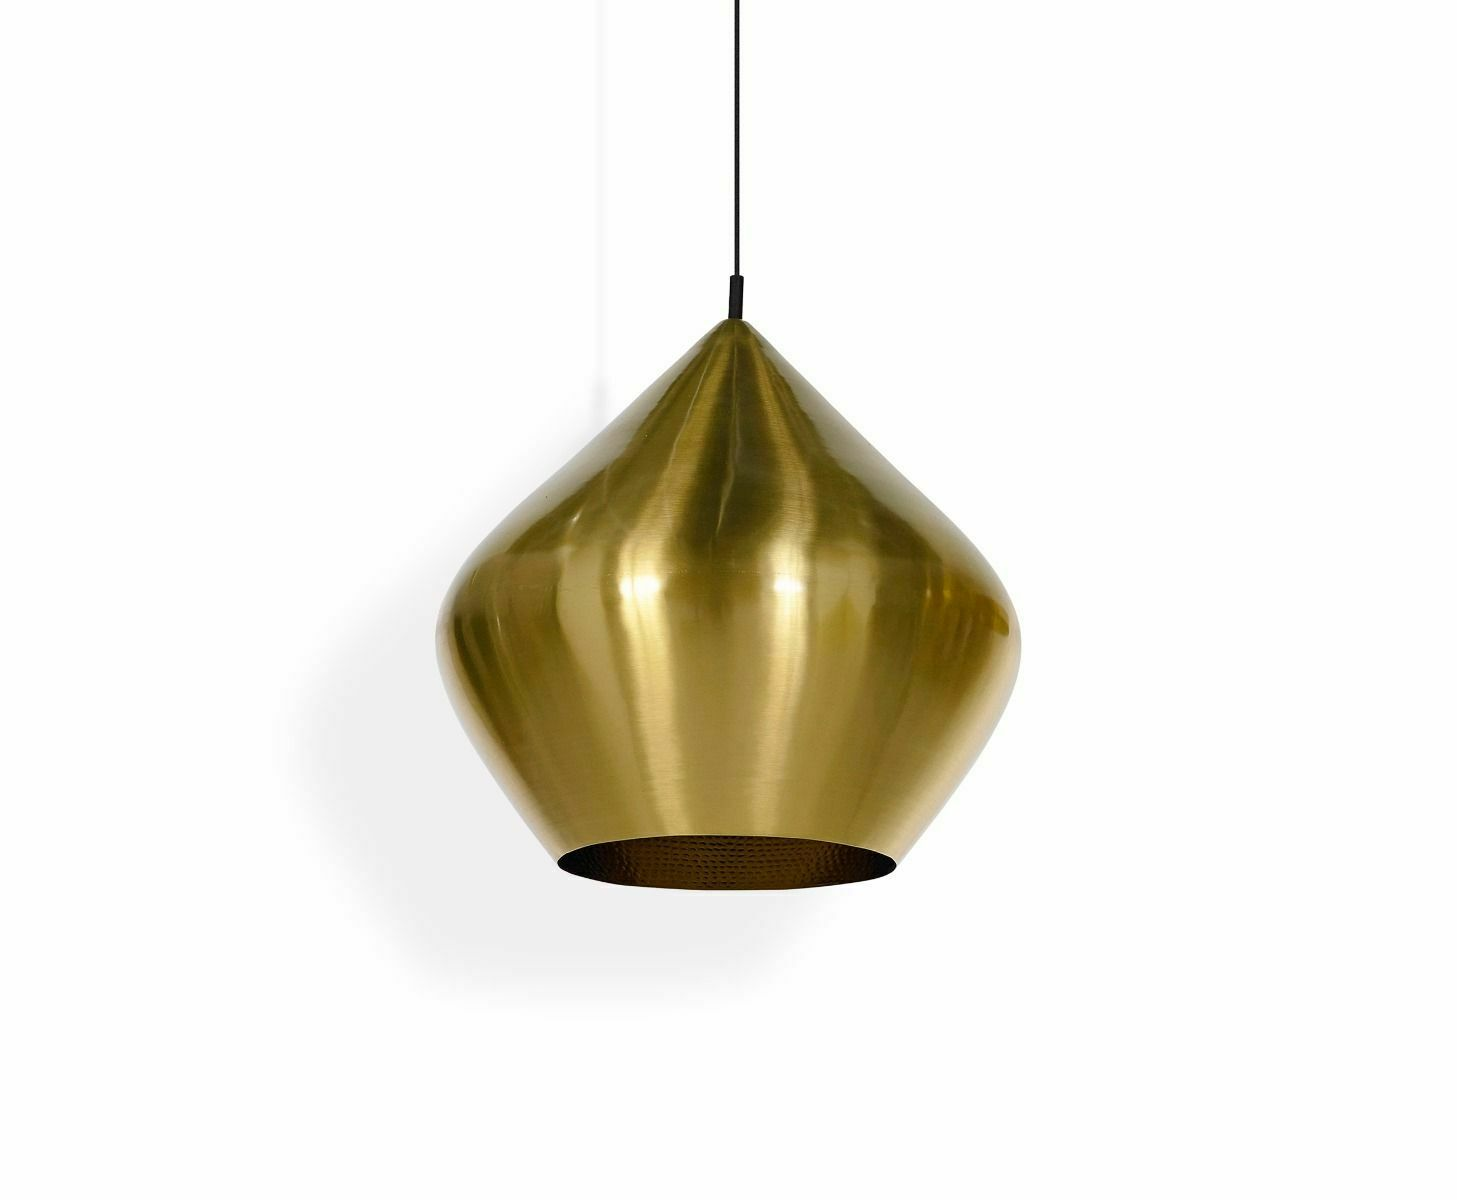 Messing Lampe Tom Dixon Beat Stout Brushed Pendant Messing Decken Leuchte Hänge Lampe Messing